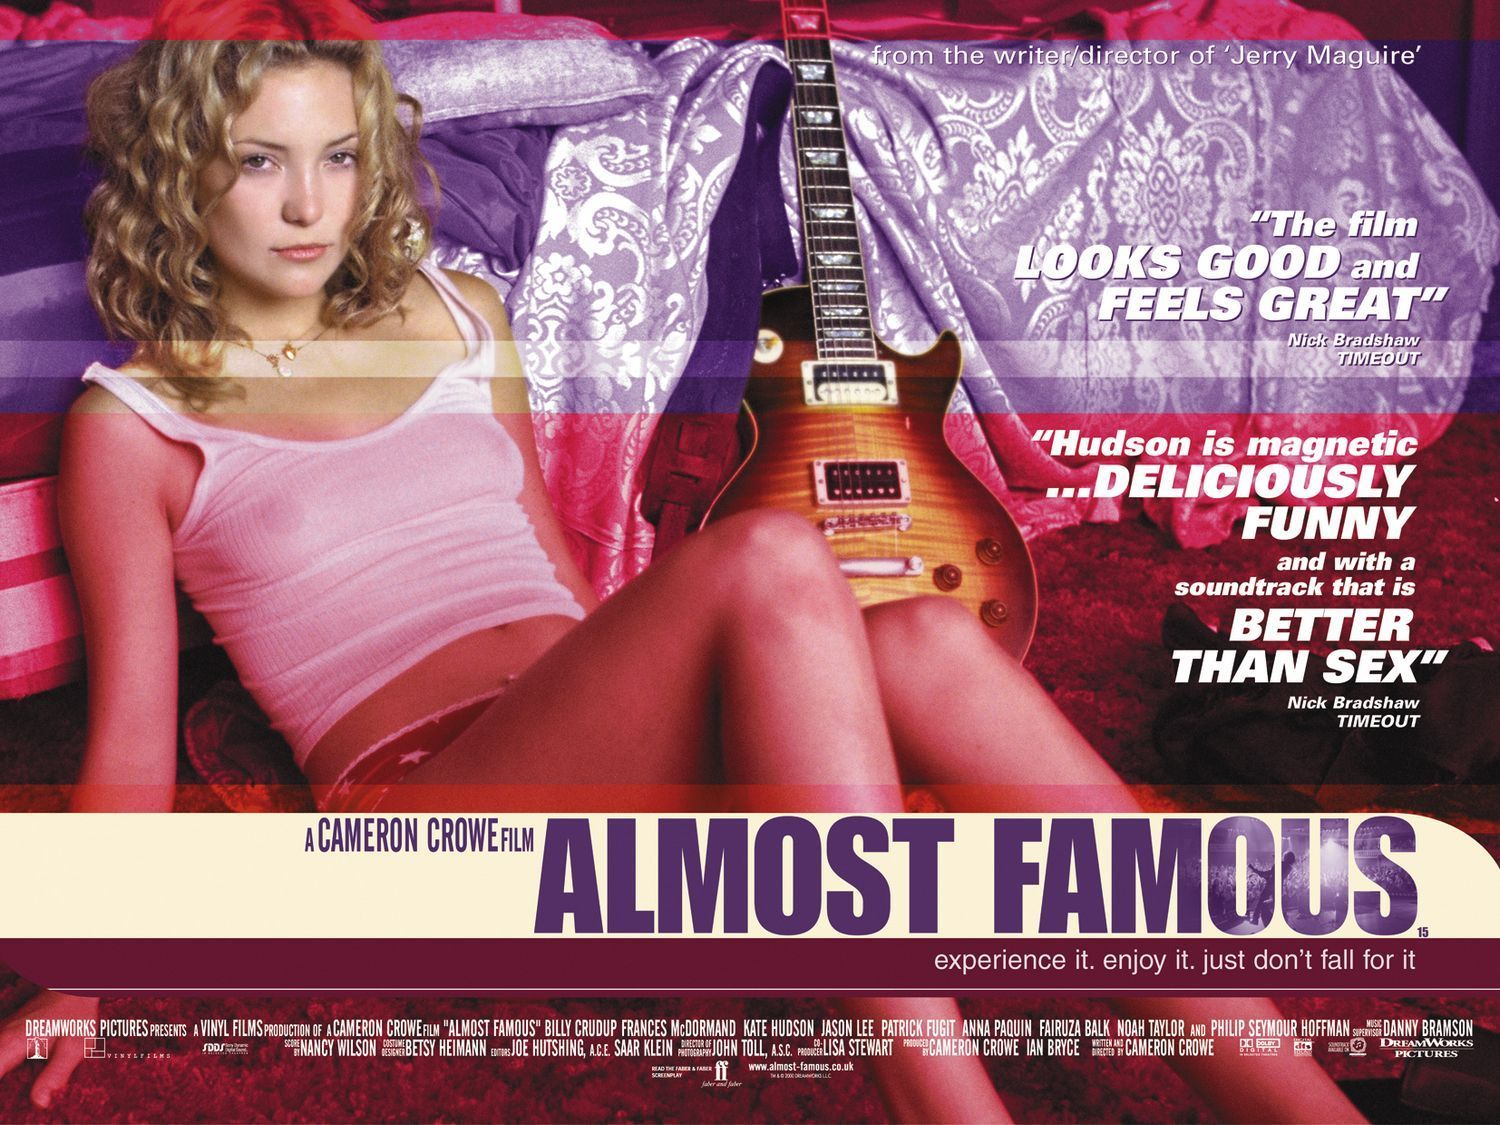 http://woodstockwardrobe.files.wordpress.com/2012/02/almost-famous.jpeg